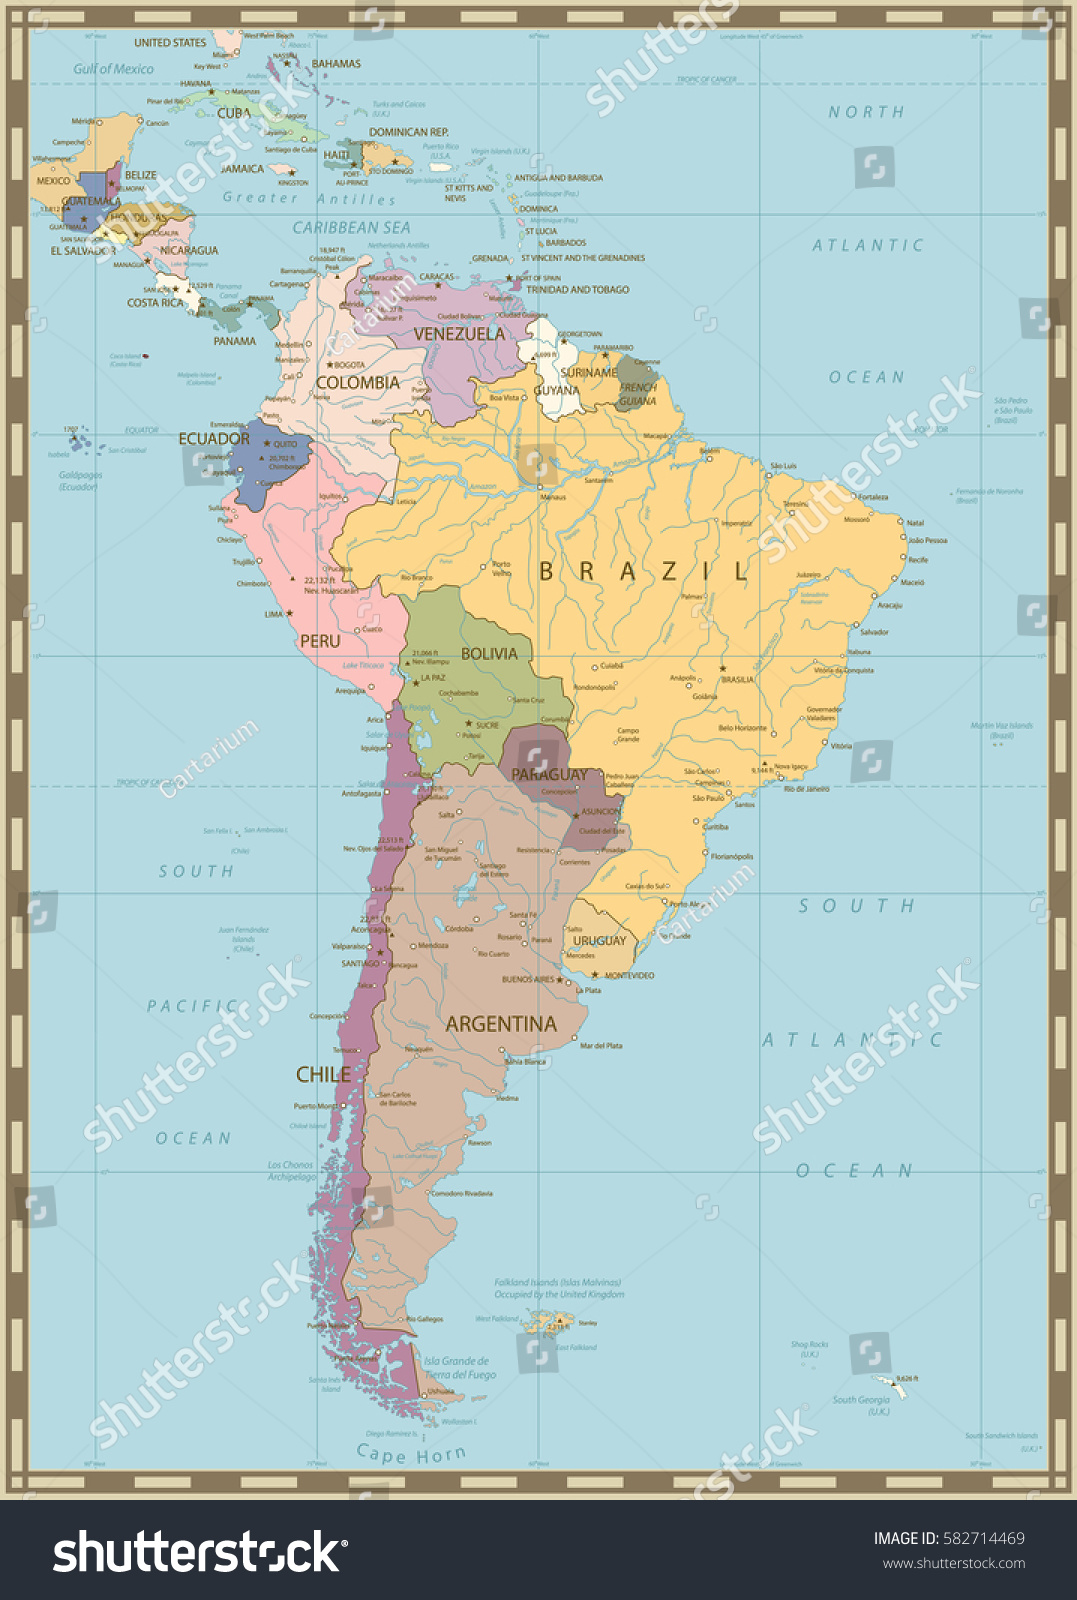 South america political map lakes rivers vectores en stock 582714469 south america political map with lakes and rivers old colors gumiabroncs Image collections